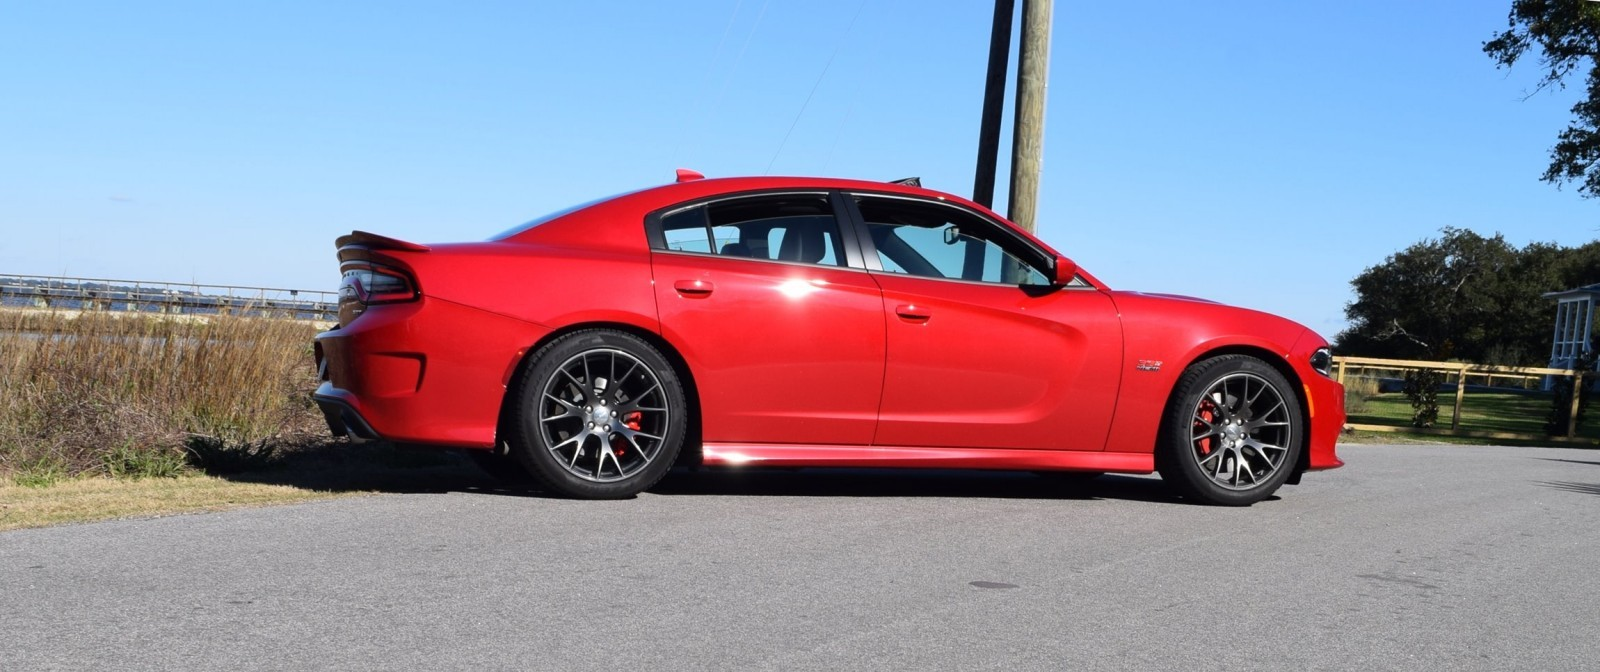 2015 Scion Tc 0 60 >> 2015 Dodge Charger Srt Hellcat 0 60.html | Autos Post